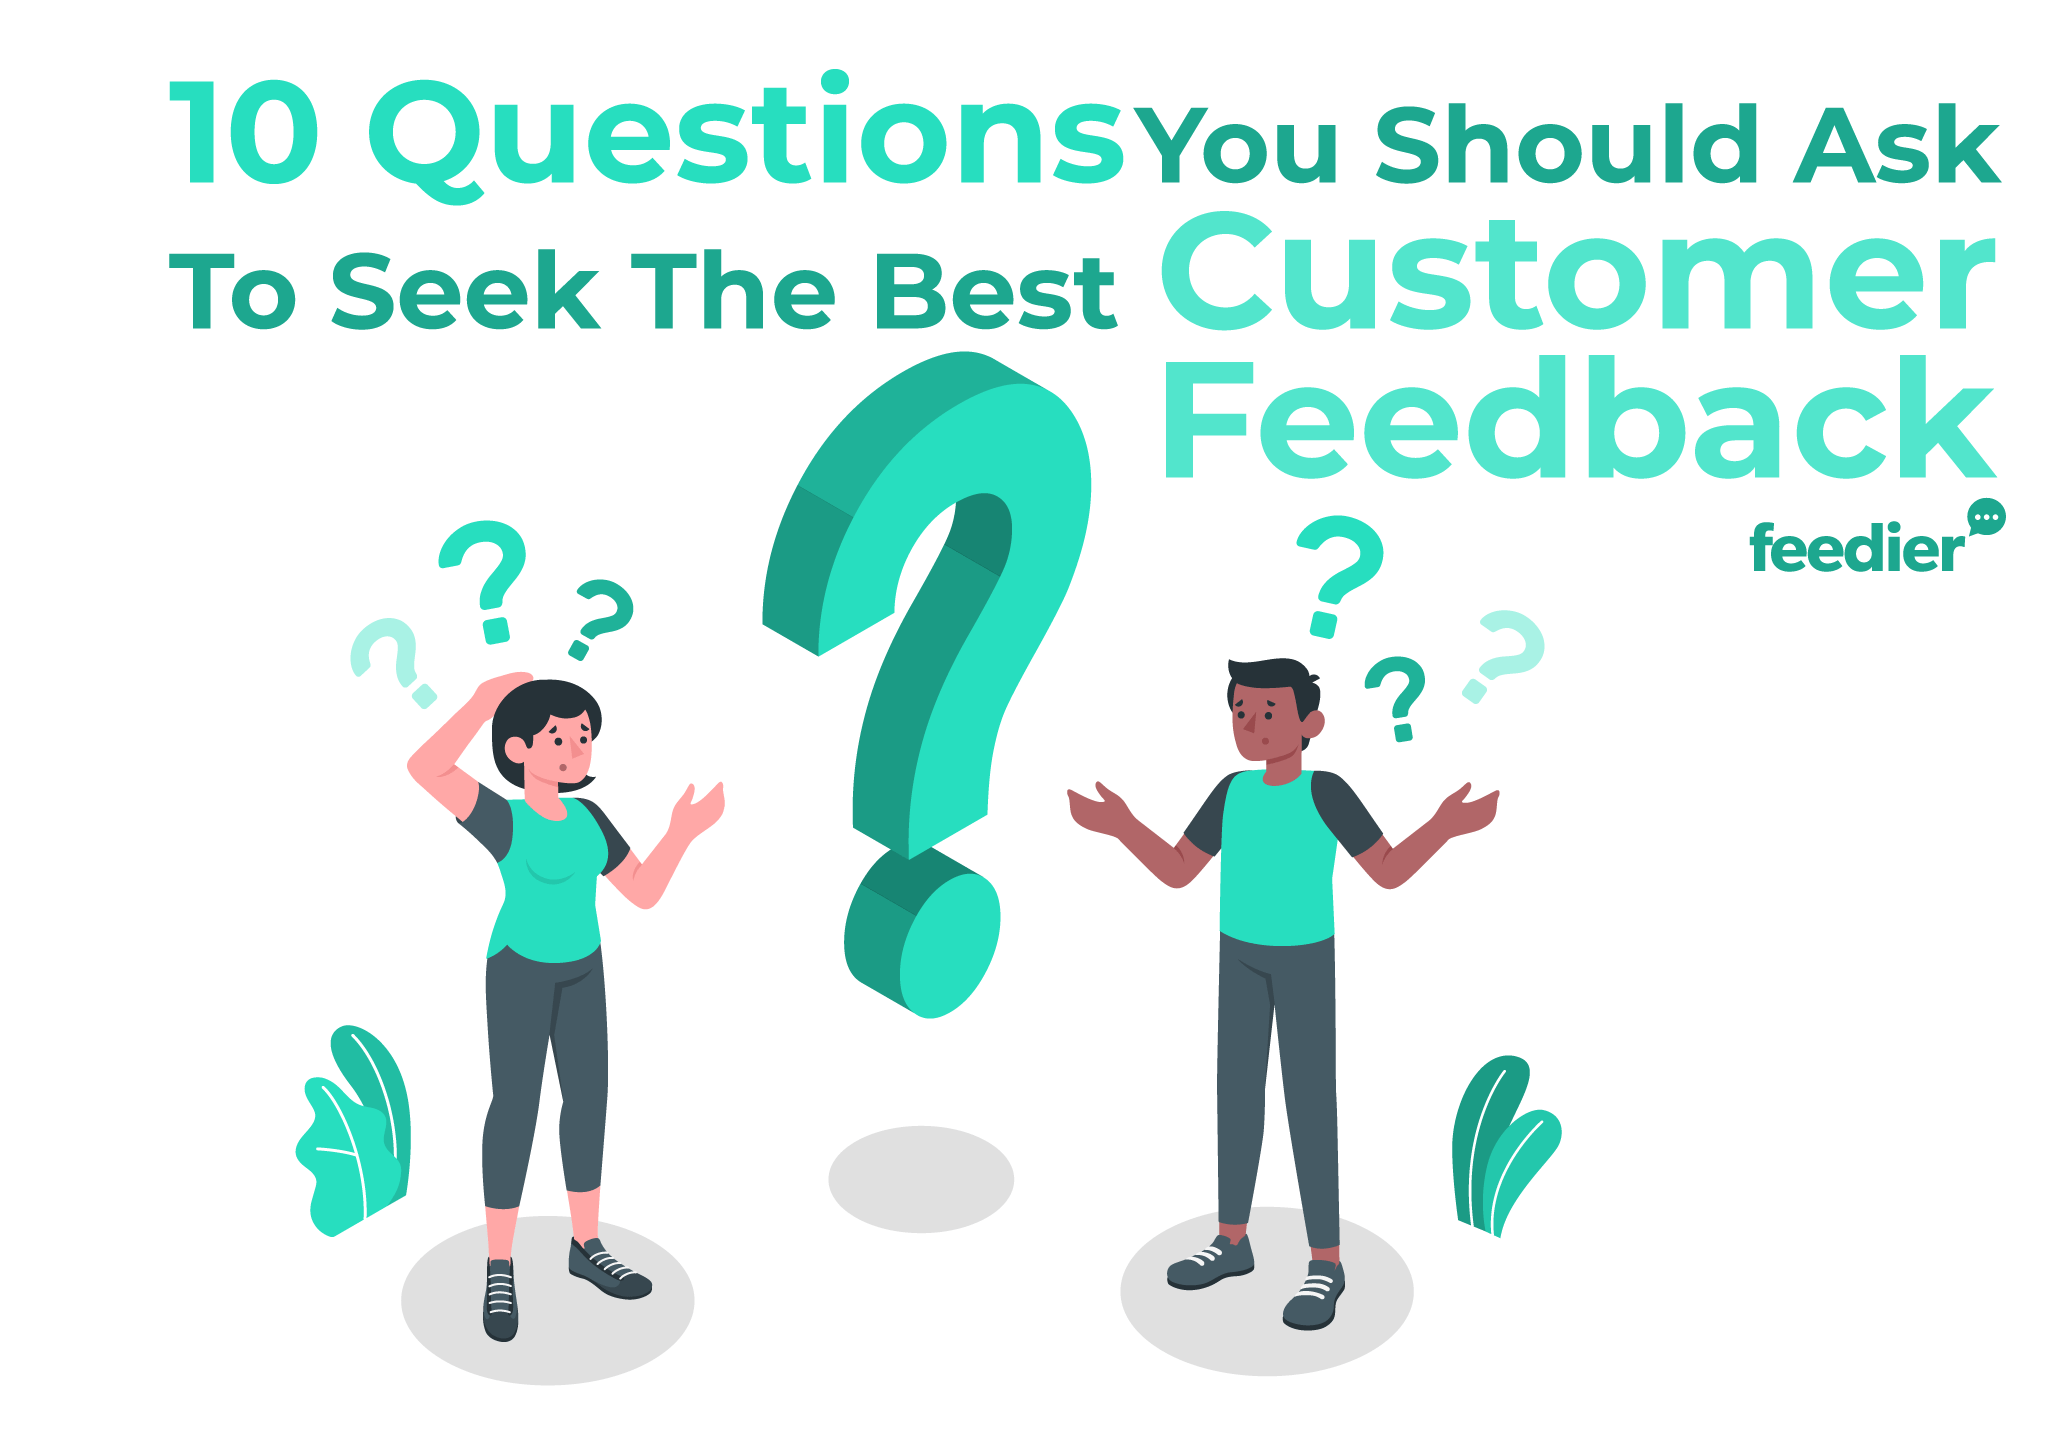 10 questions to seek customer feedback